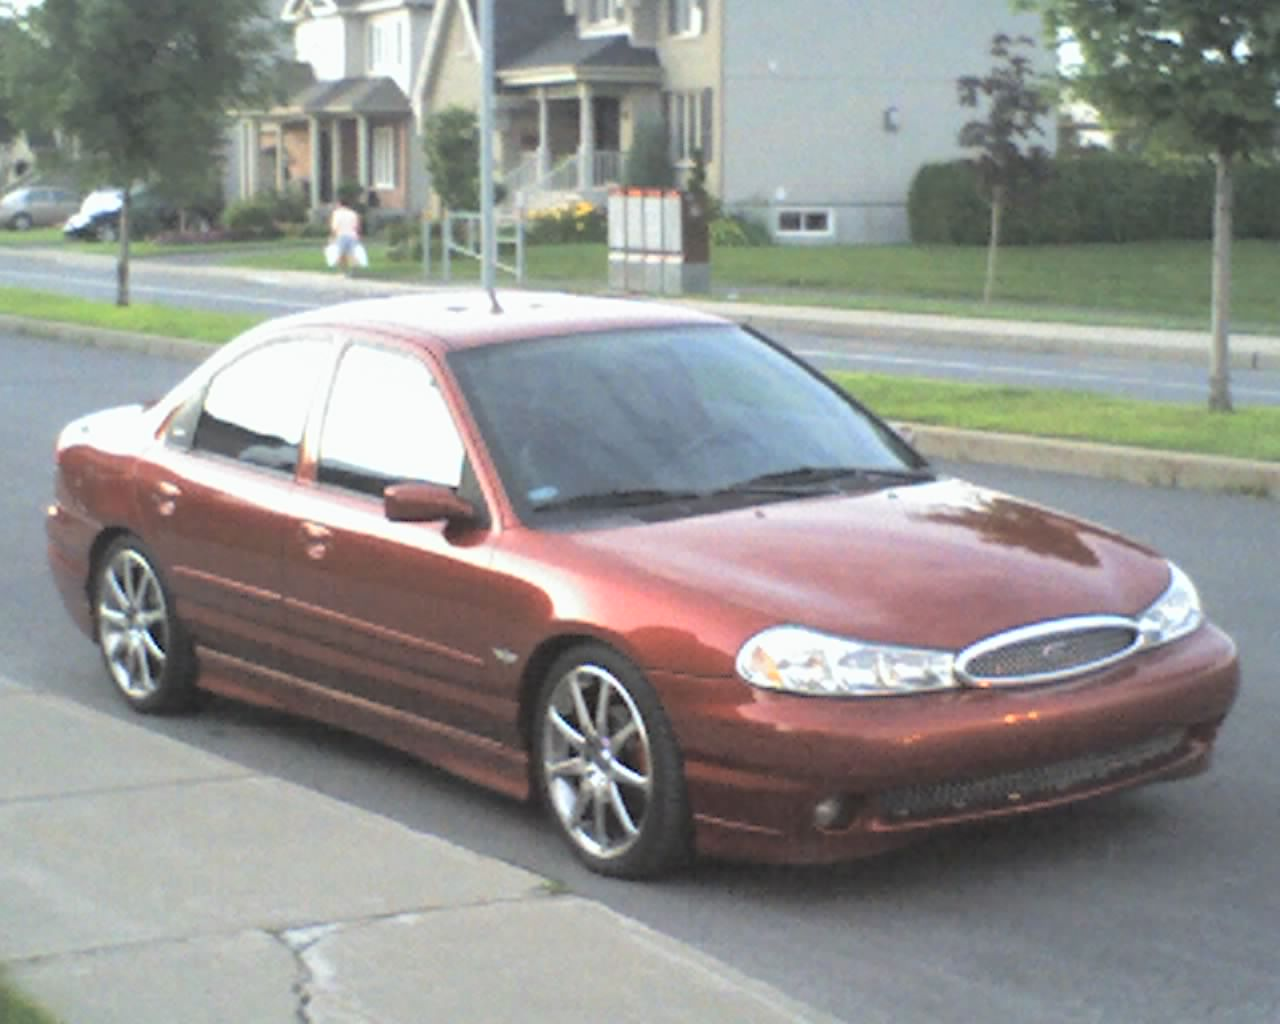 97 Ford Contour Pictures to Pin on Pinterest - PinsDaddy